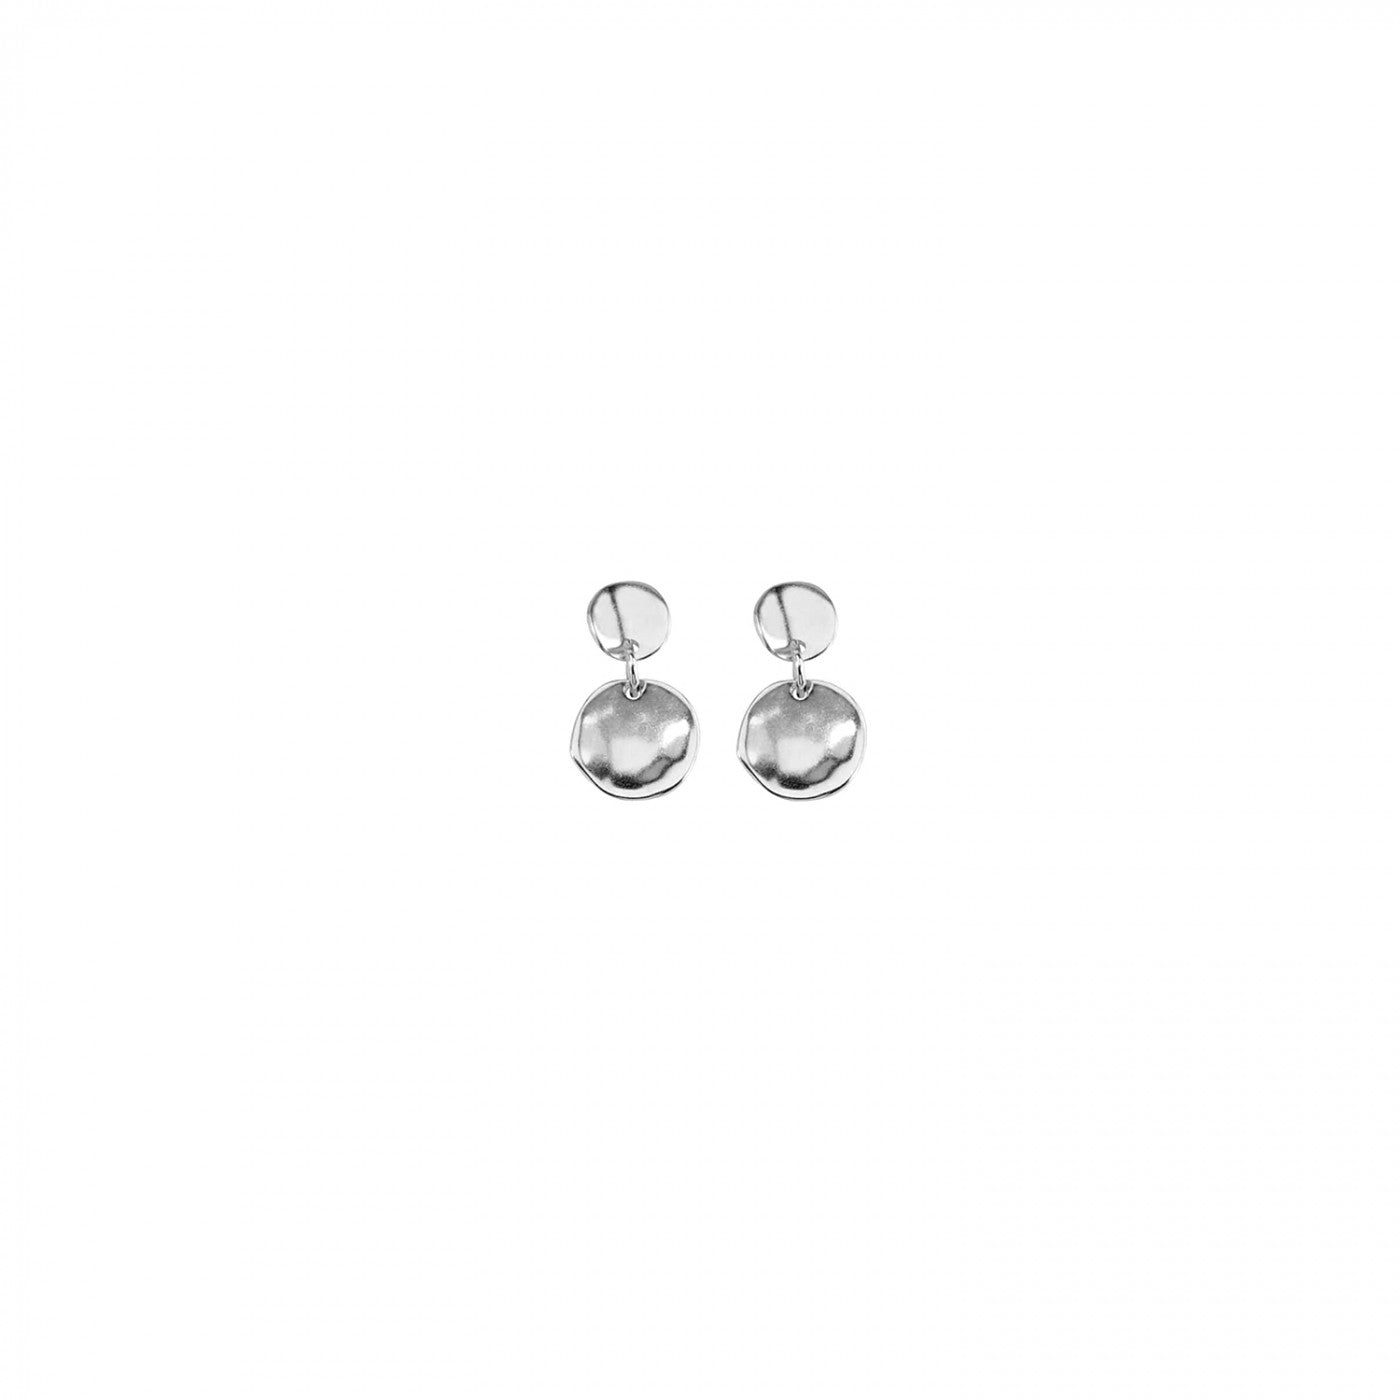 Scales Earrings - Silver